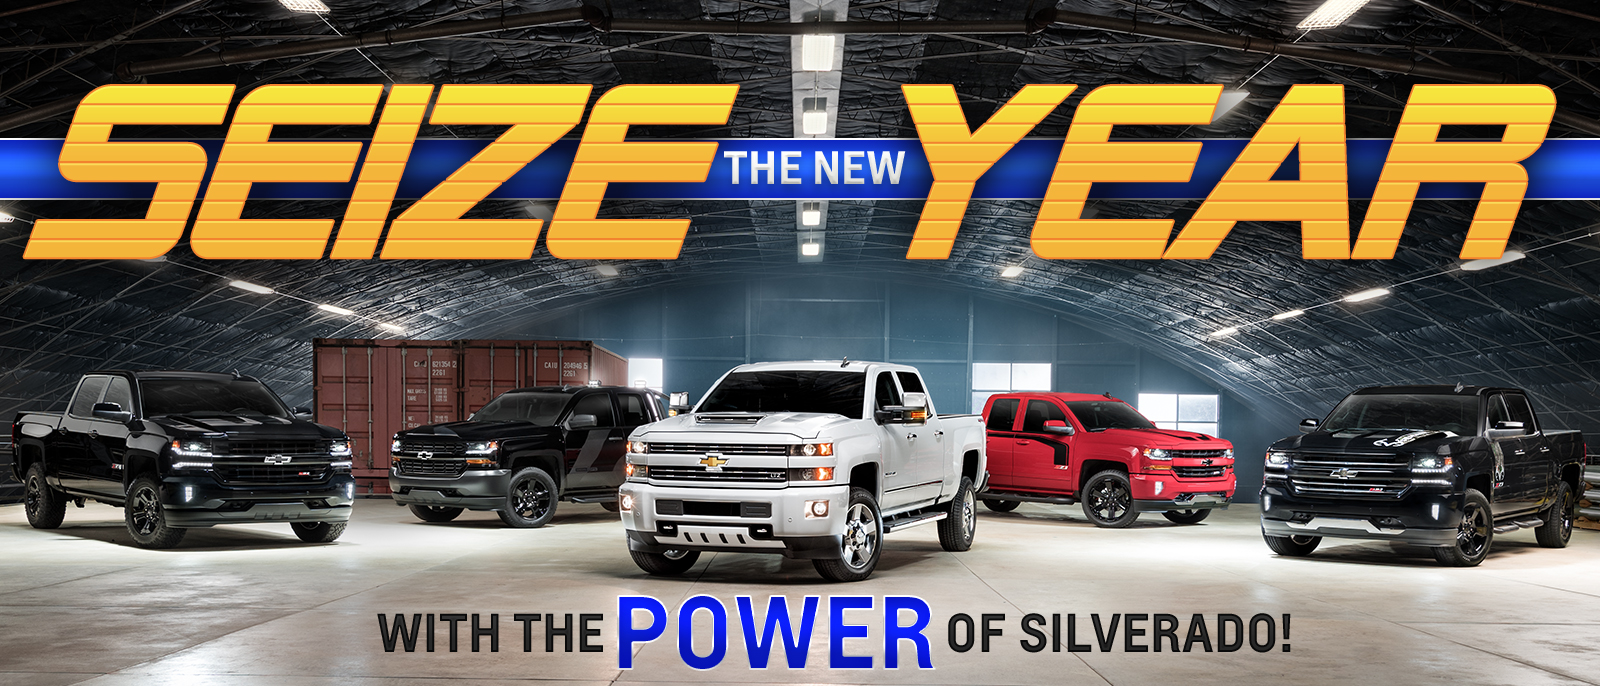 Blossom Chevrolet is a Indianapolis Chevrolet dealer and a new car